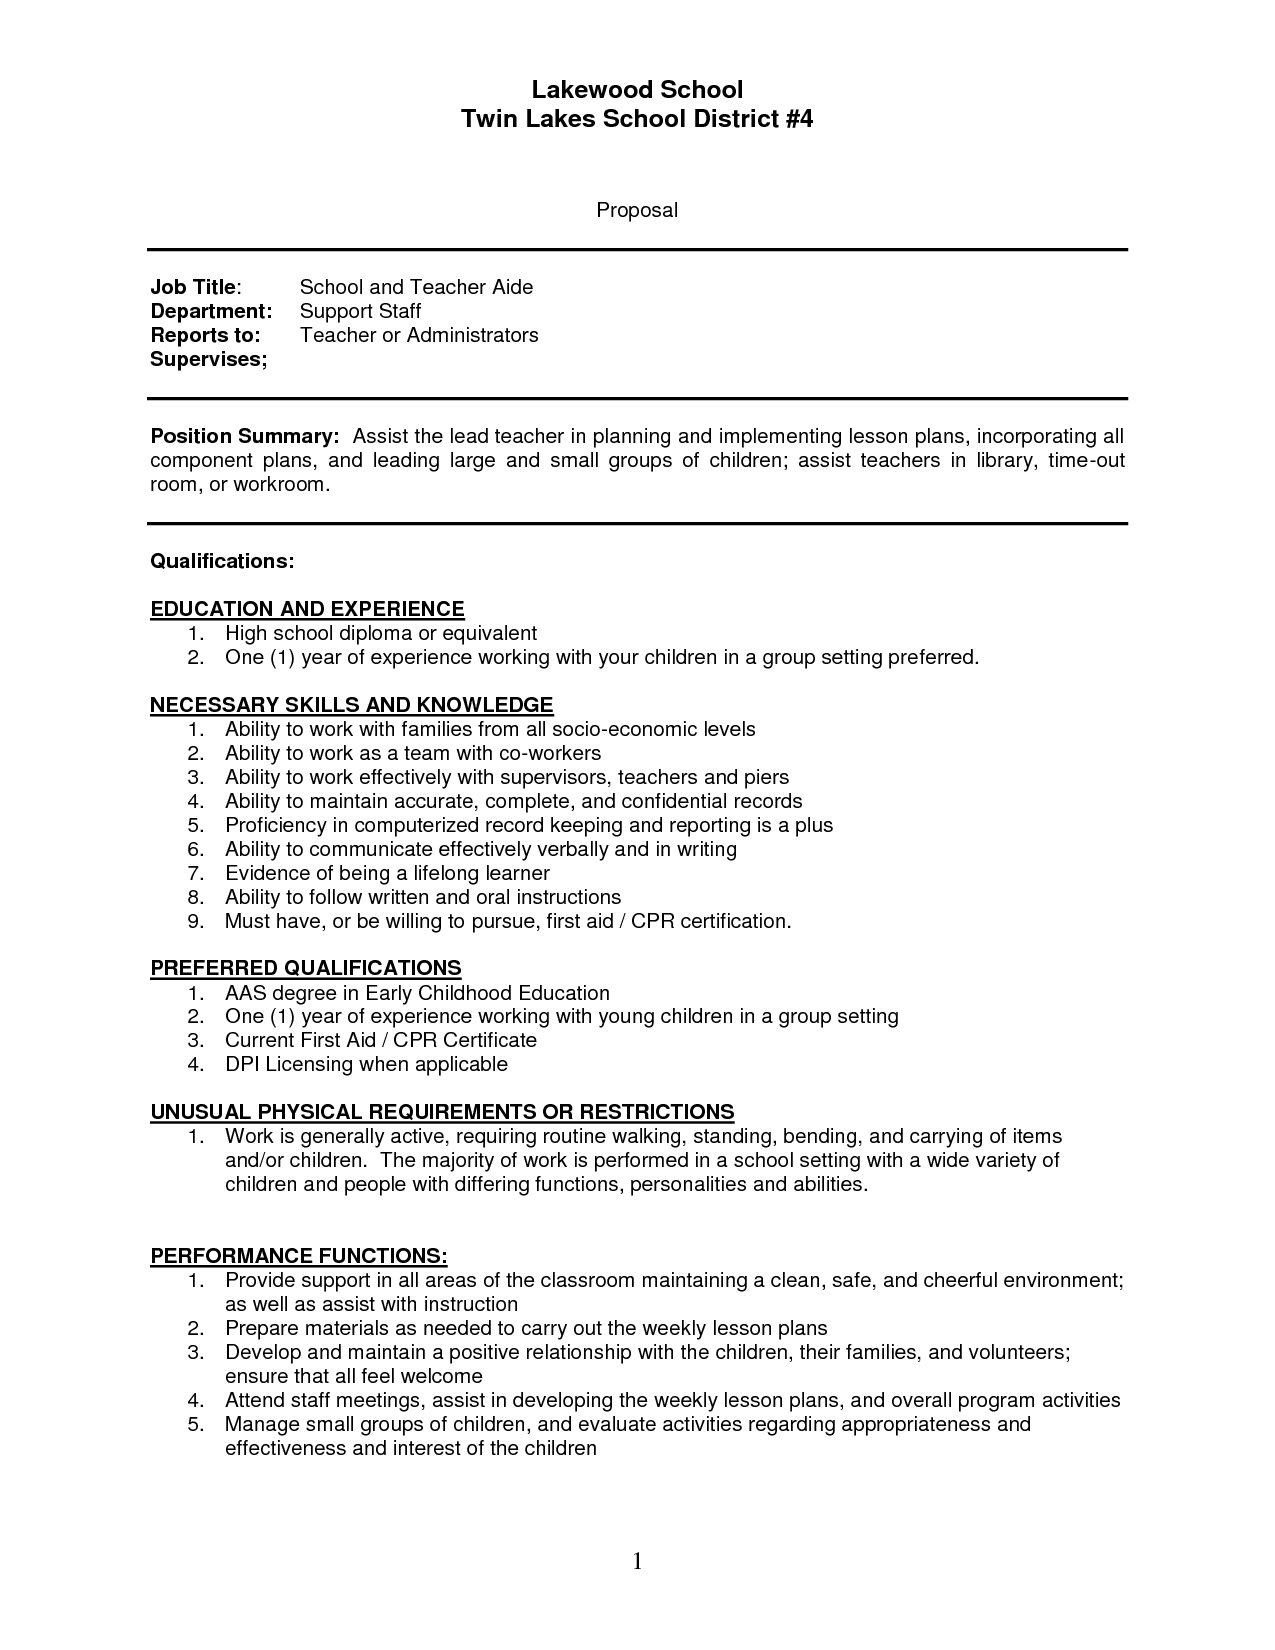 Student Affairs Resume Teacher Assistant Sample Resume Sample Resume Of Teachers Aides